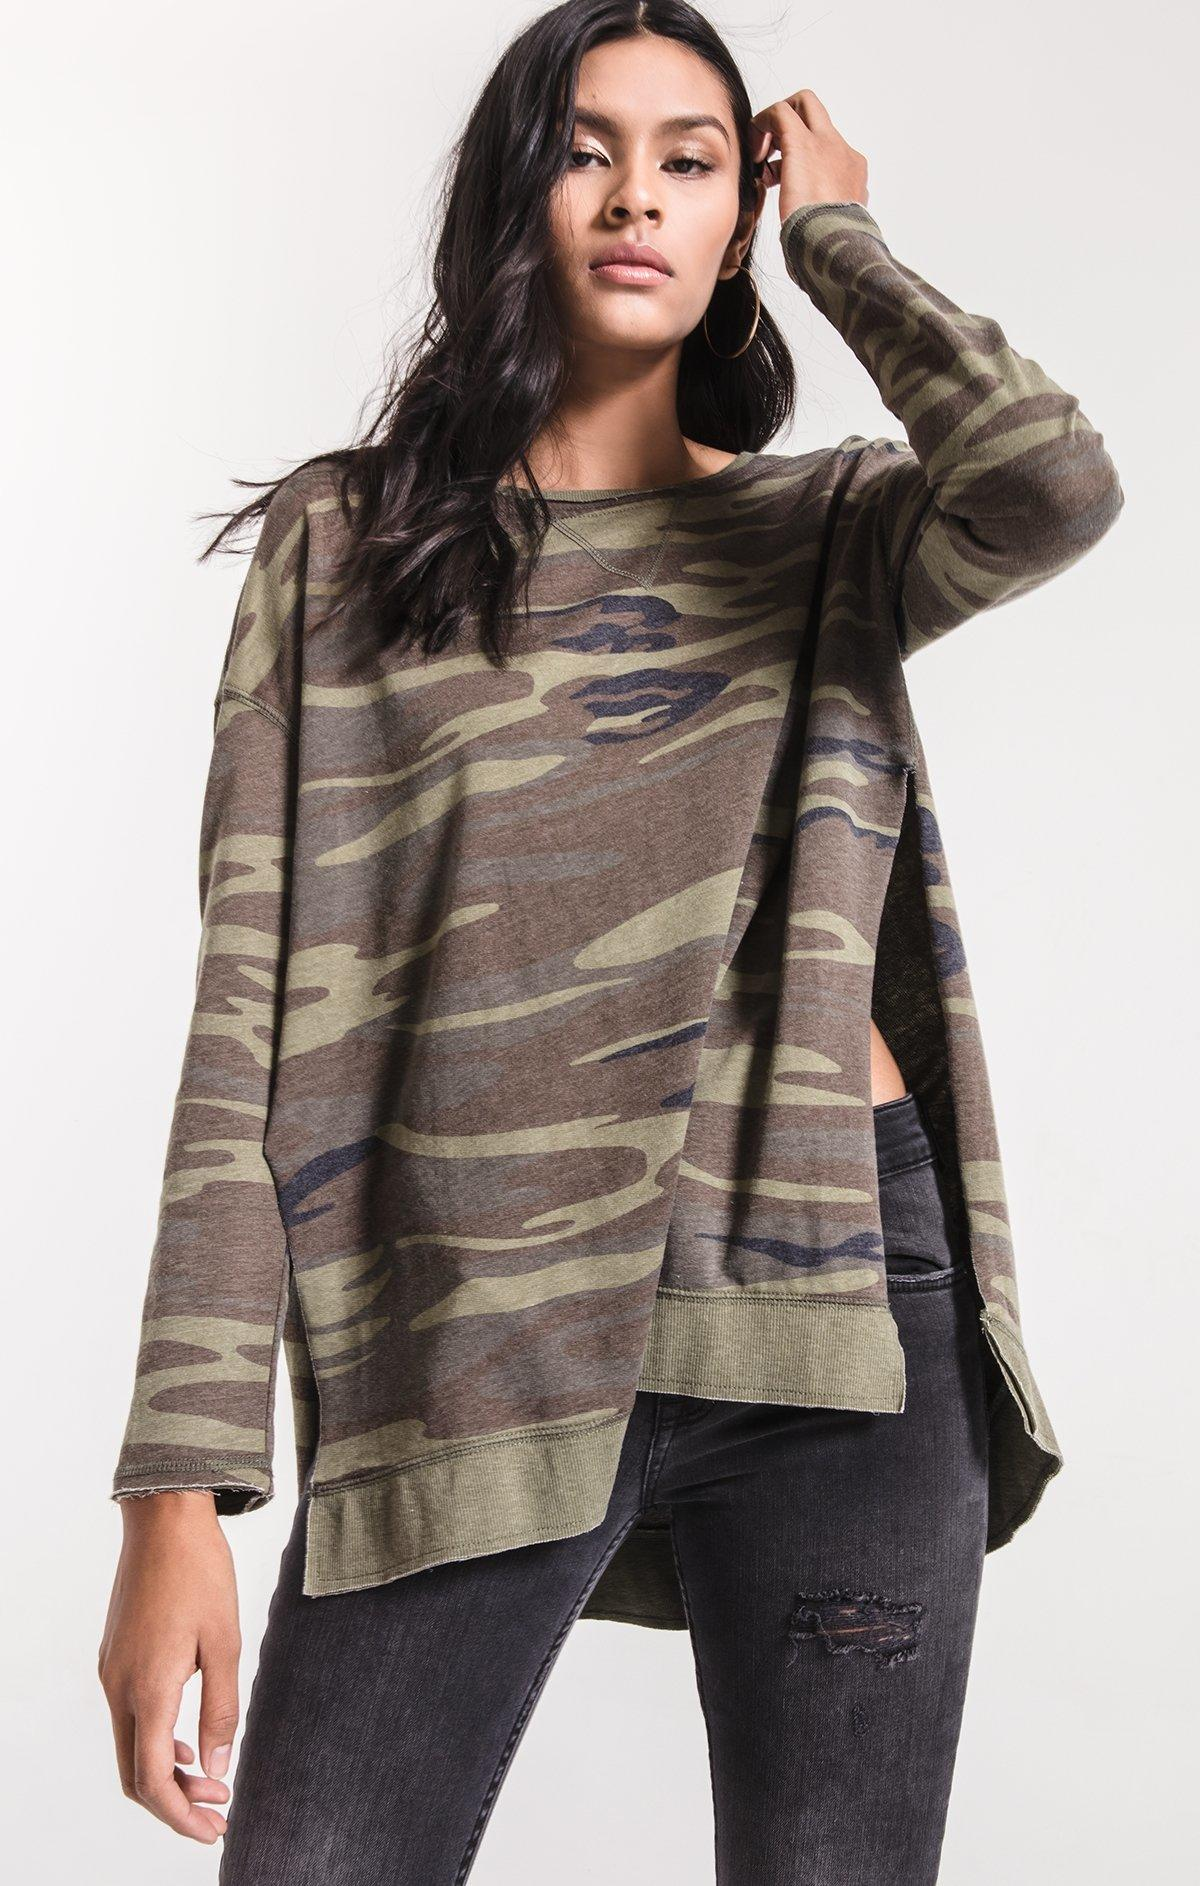 Image of The Weekender in Camo